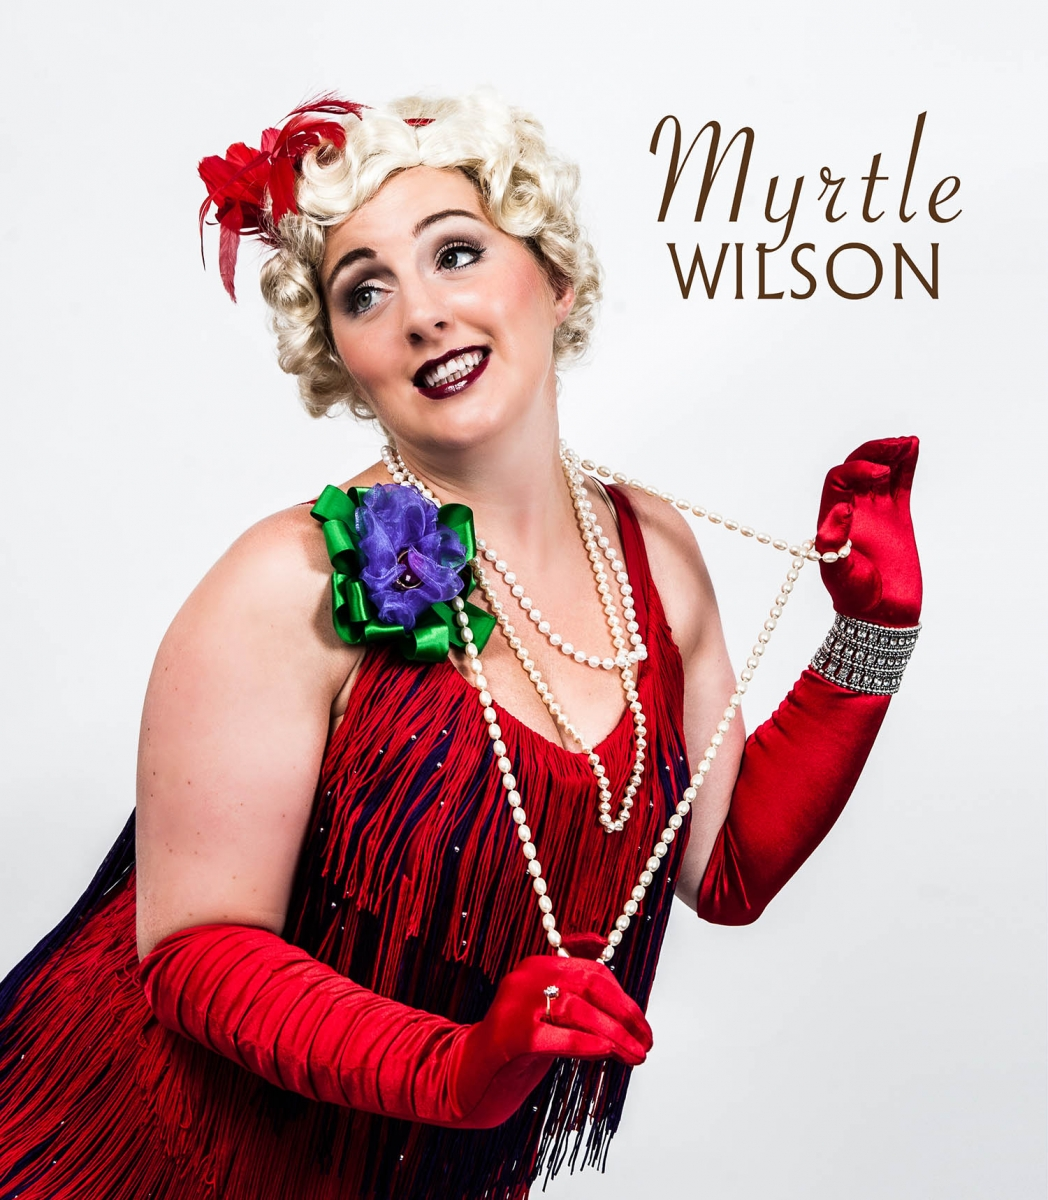 eulogy of mrytle wilson Myrtle wilson wilson owns a run-down garage in the valley of ashes myrtle herself possessed a fierce vitality and desperately looked for a way to improve her situation unfortunately for her, she chose tom, who treated her as a mere object of his desire.